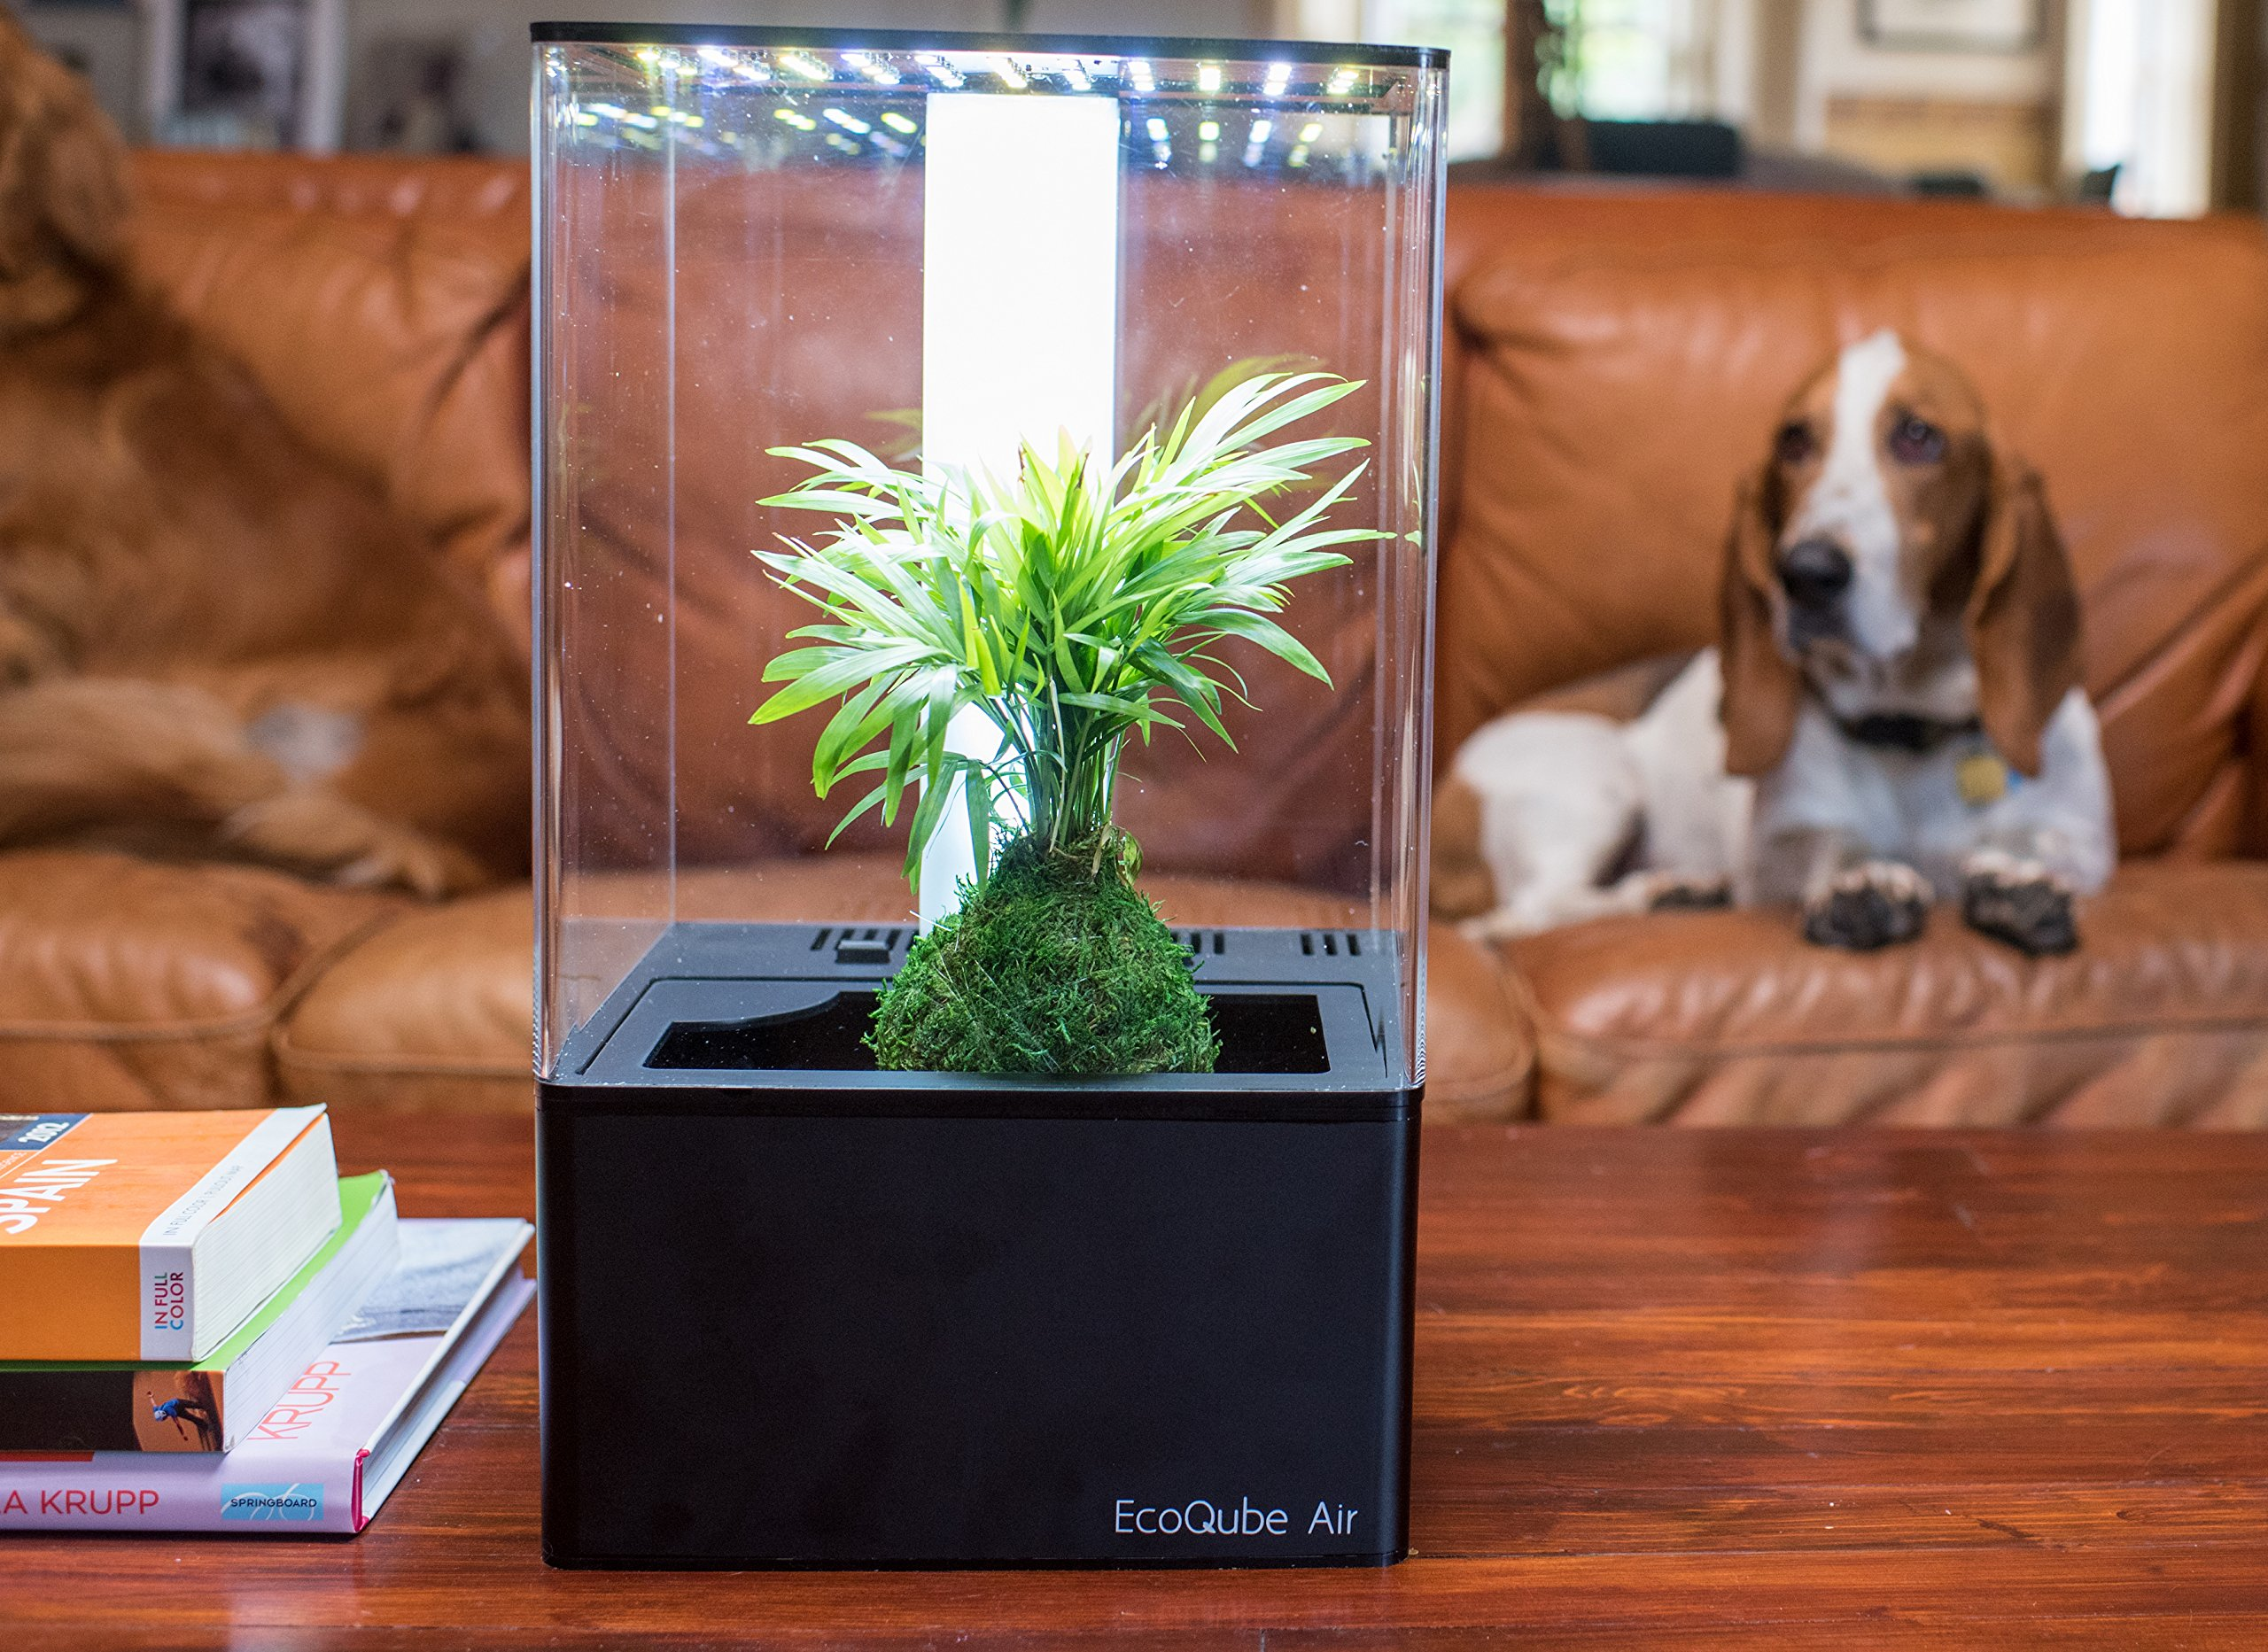 EcoQube Air - Decorative Hydroponics Indoor Herb Home Garden Kit with LED Grow Light, Basil Seeds and True Hepa-Type Filter Air Purifier by EcoQube (Image #8)